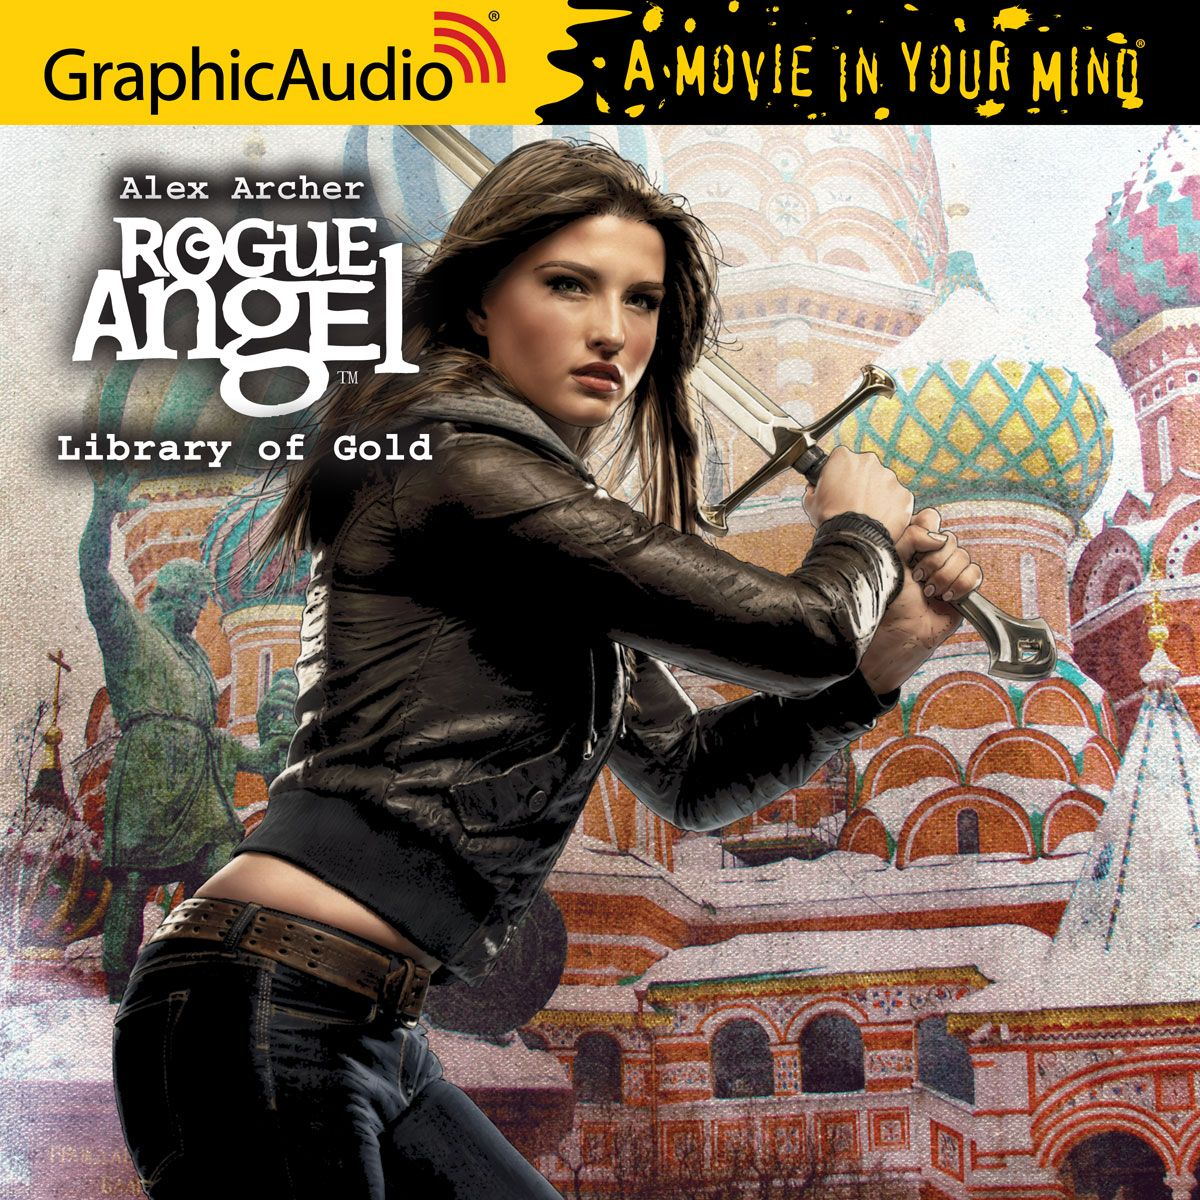 Rogue Angel Library Of Gold By Graphicaudio On Soundcloud